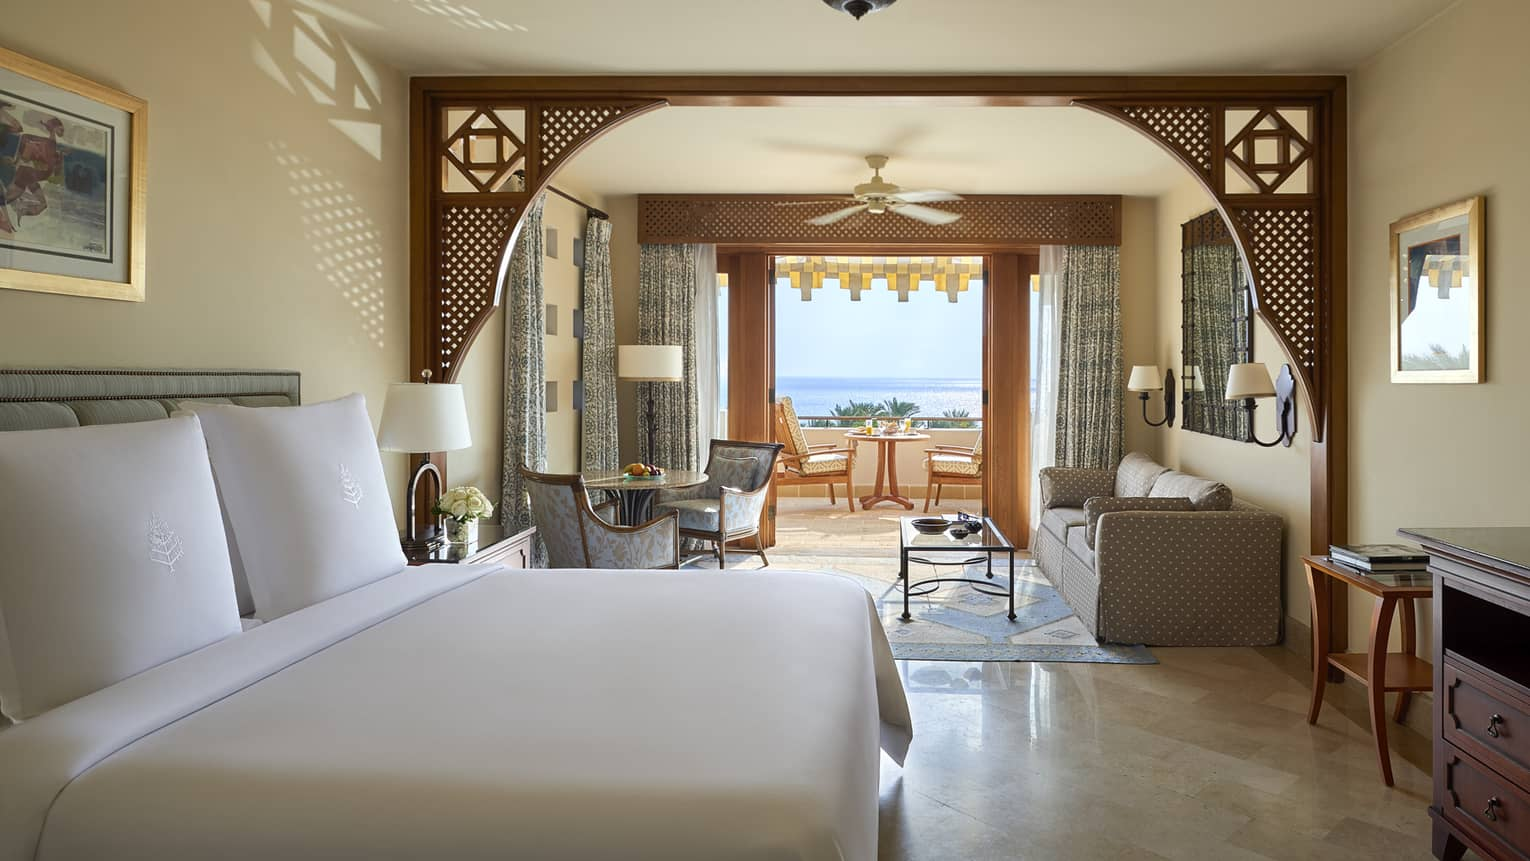 Sea-view room with living area, tan floors and intricate molding